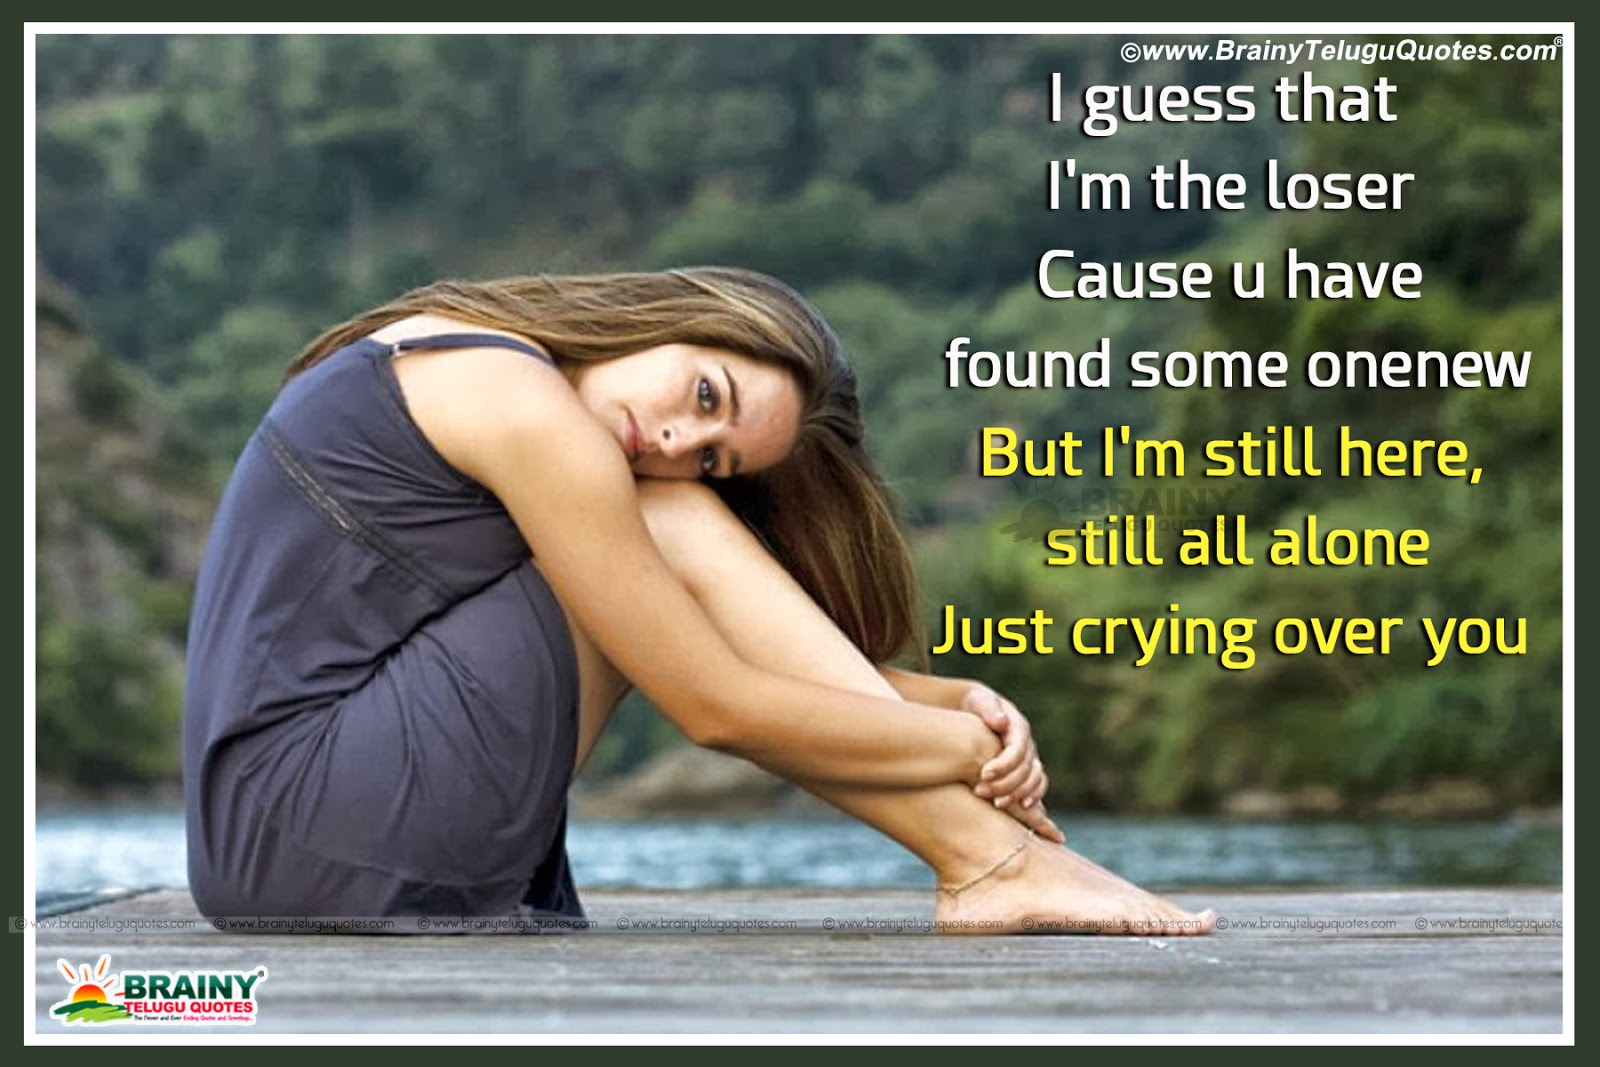 Quotes For Love In English, Love Missing Your Quotes, - Sad Girl In Love - HD Wallpaper